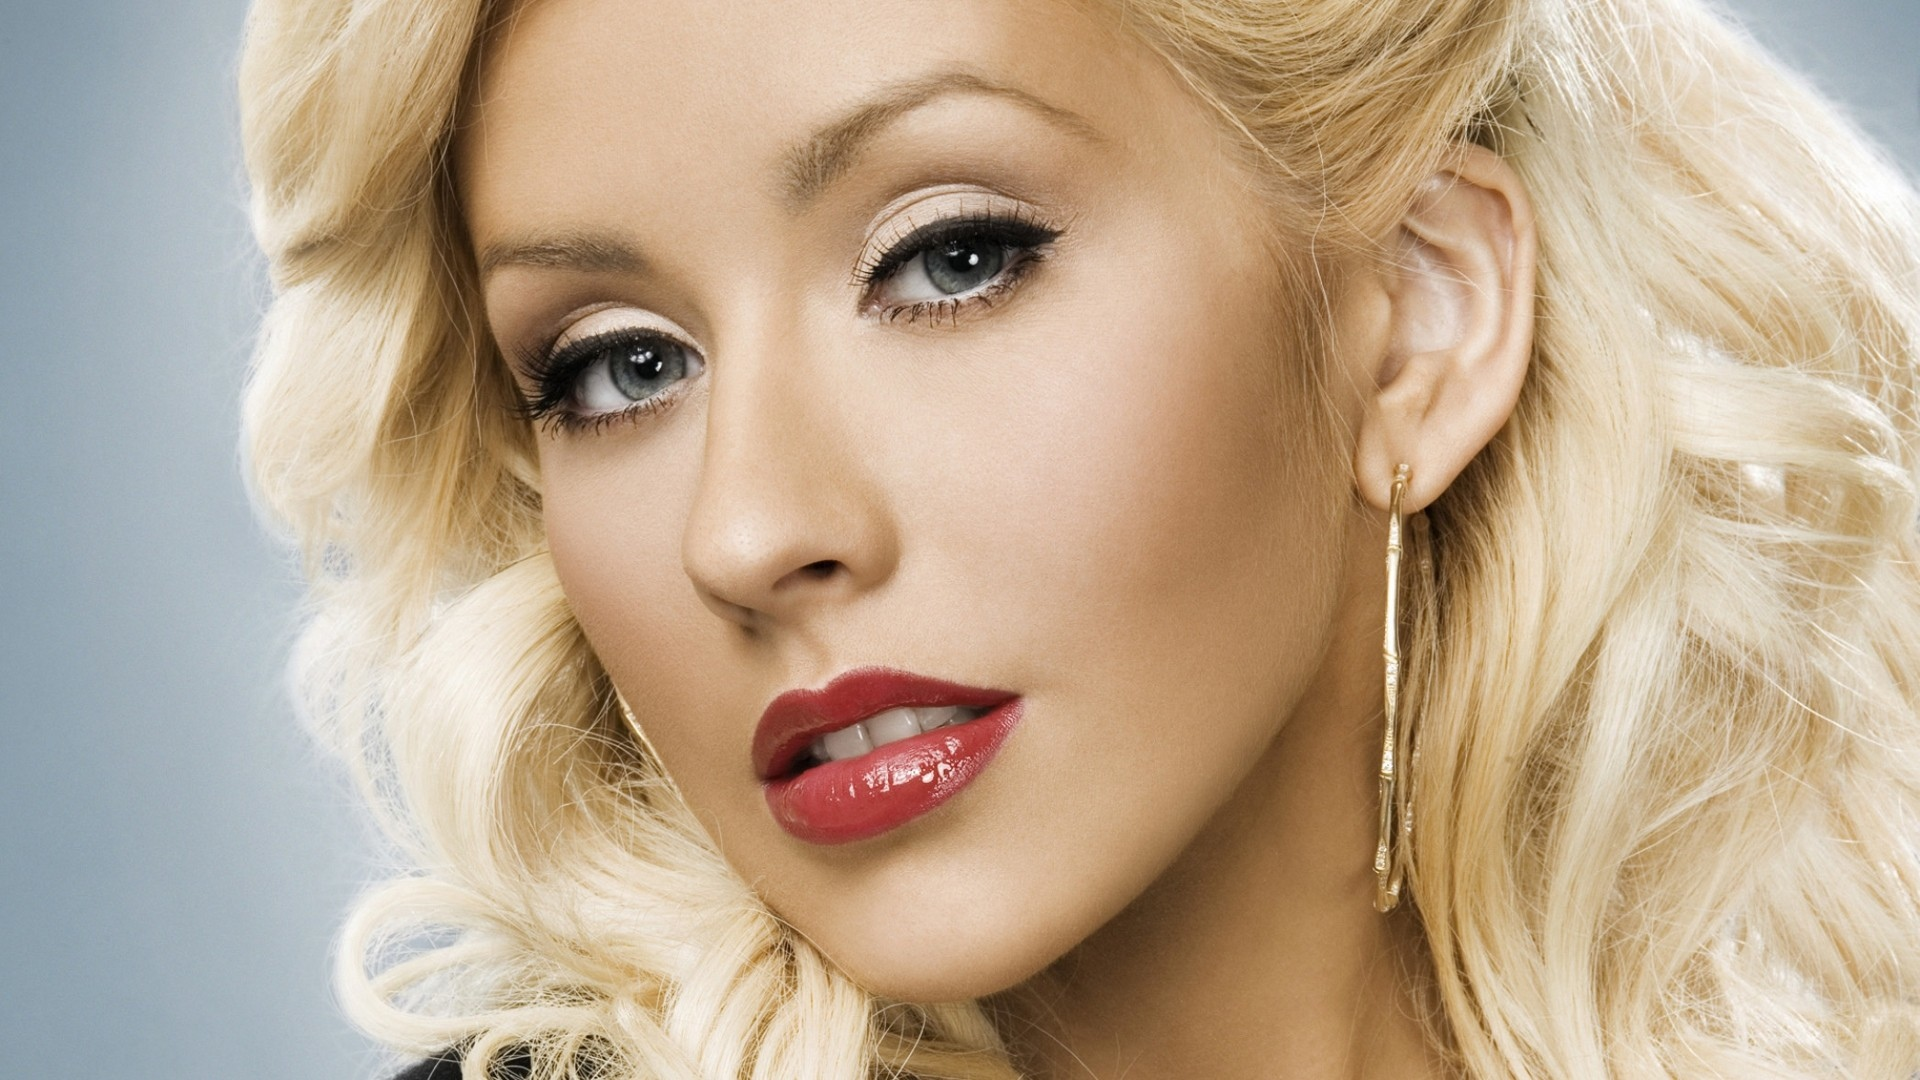 christina aguilera face hd wallpaper 59853